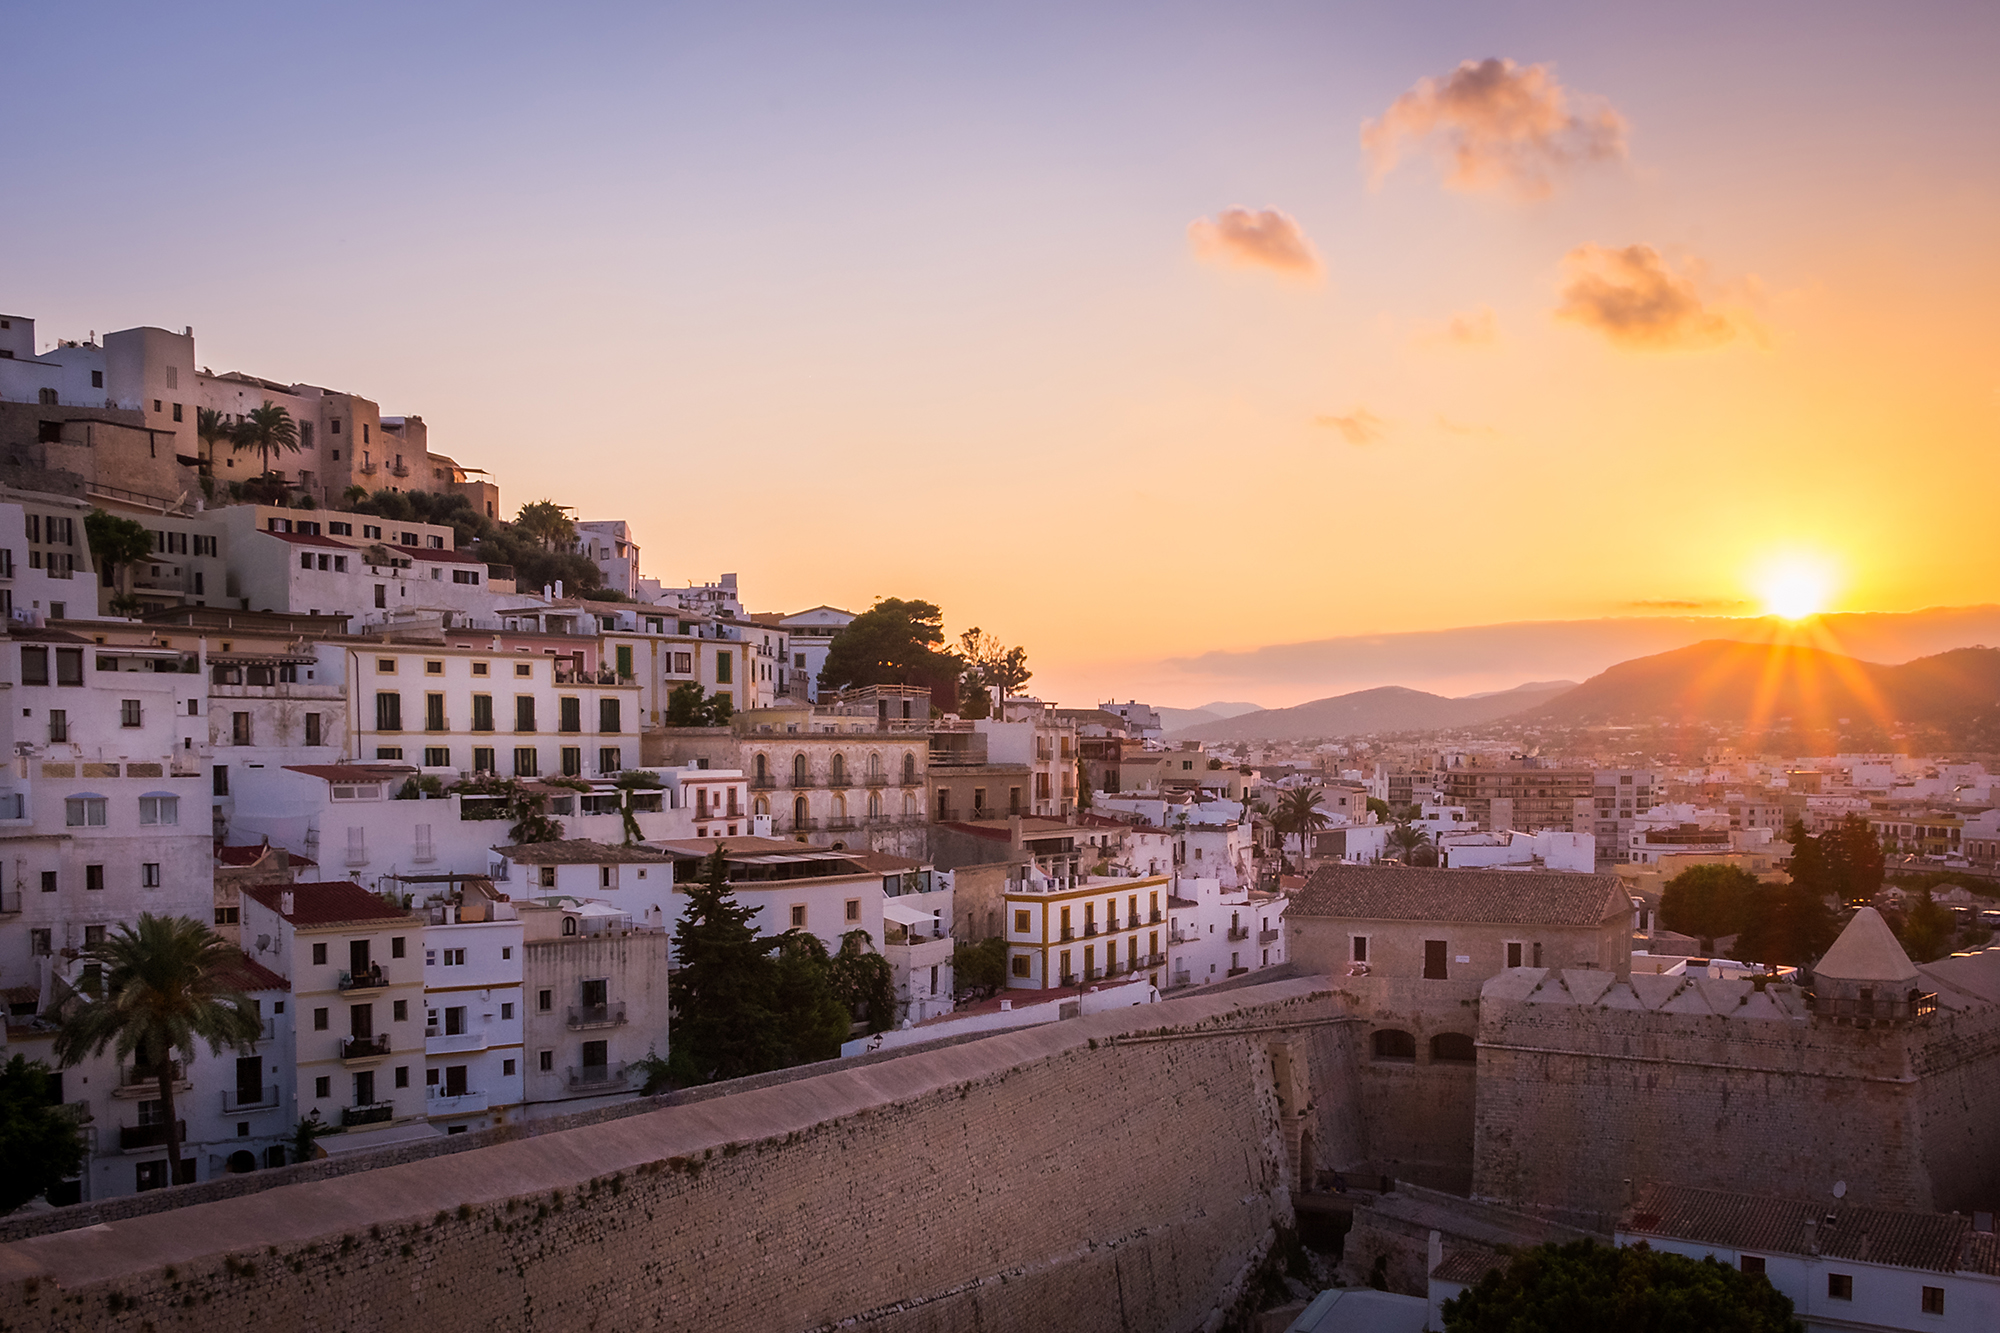 A sunset photo of Ibiza's Old Town, Ibiza, Spain by Trevor Sherwin